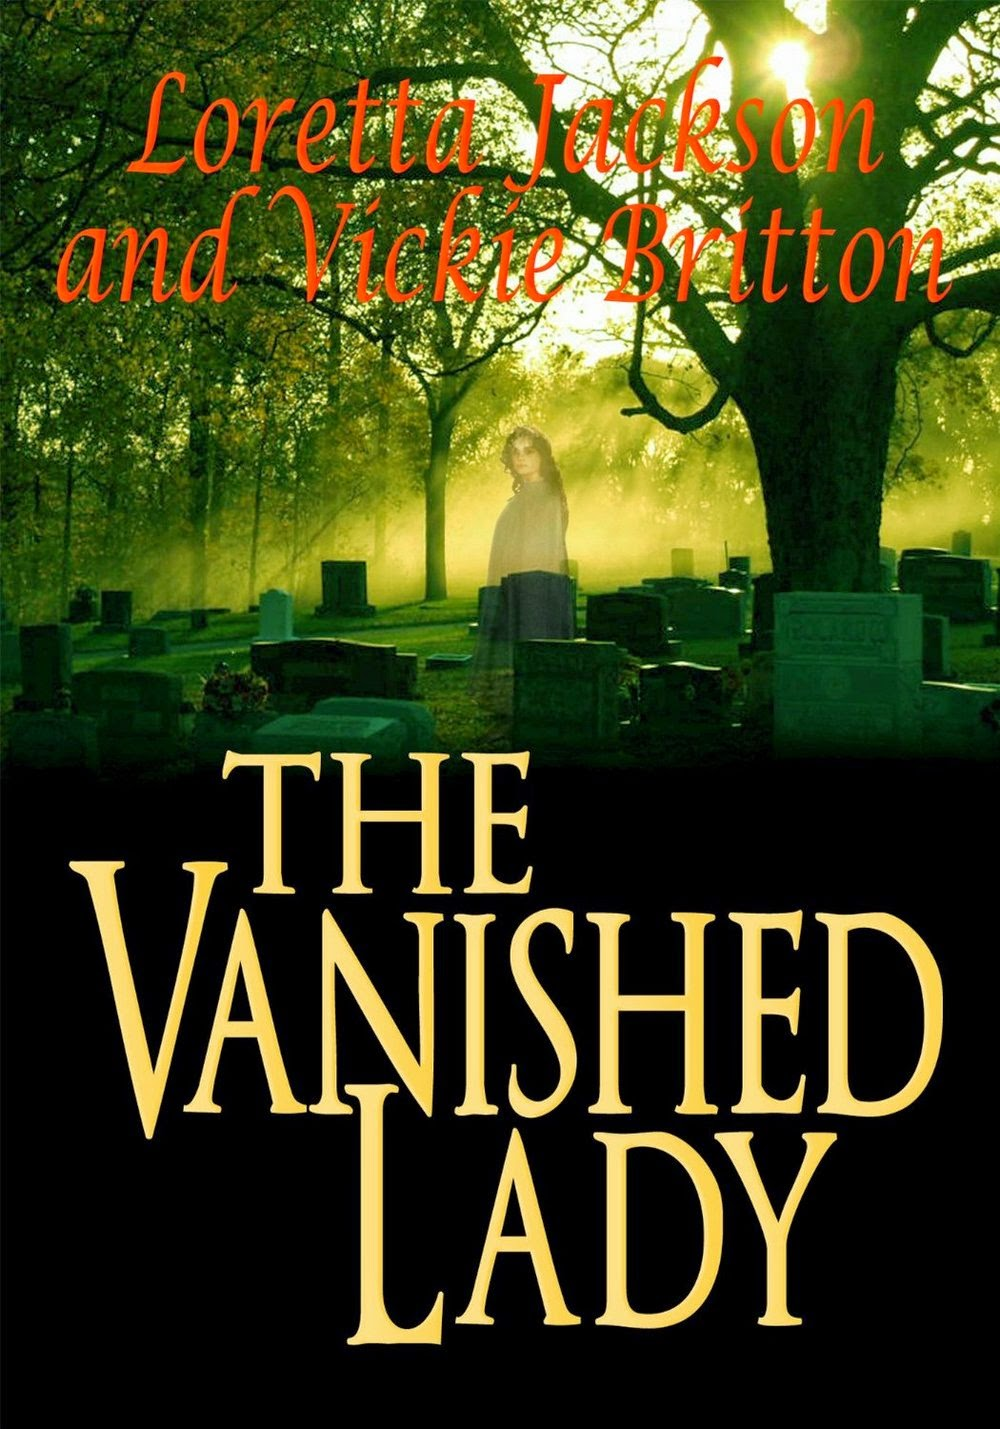 CLICK ON COVER FOR CHANCE TO WIN THE VANISHED LADY--OUR BESTSELLING MYSTERY/SUSPENSE